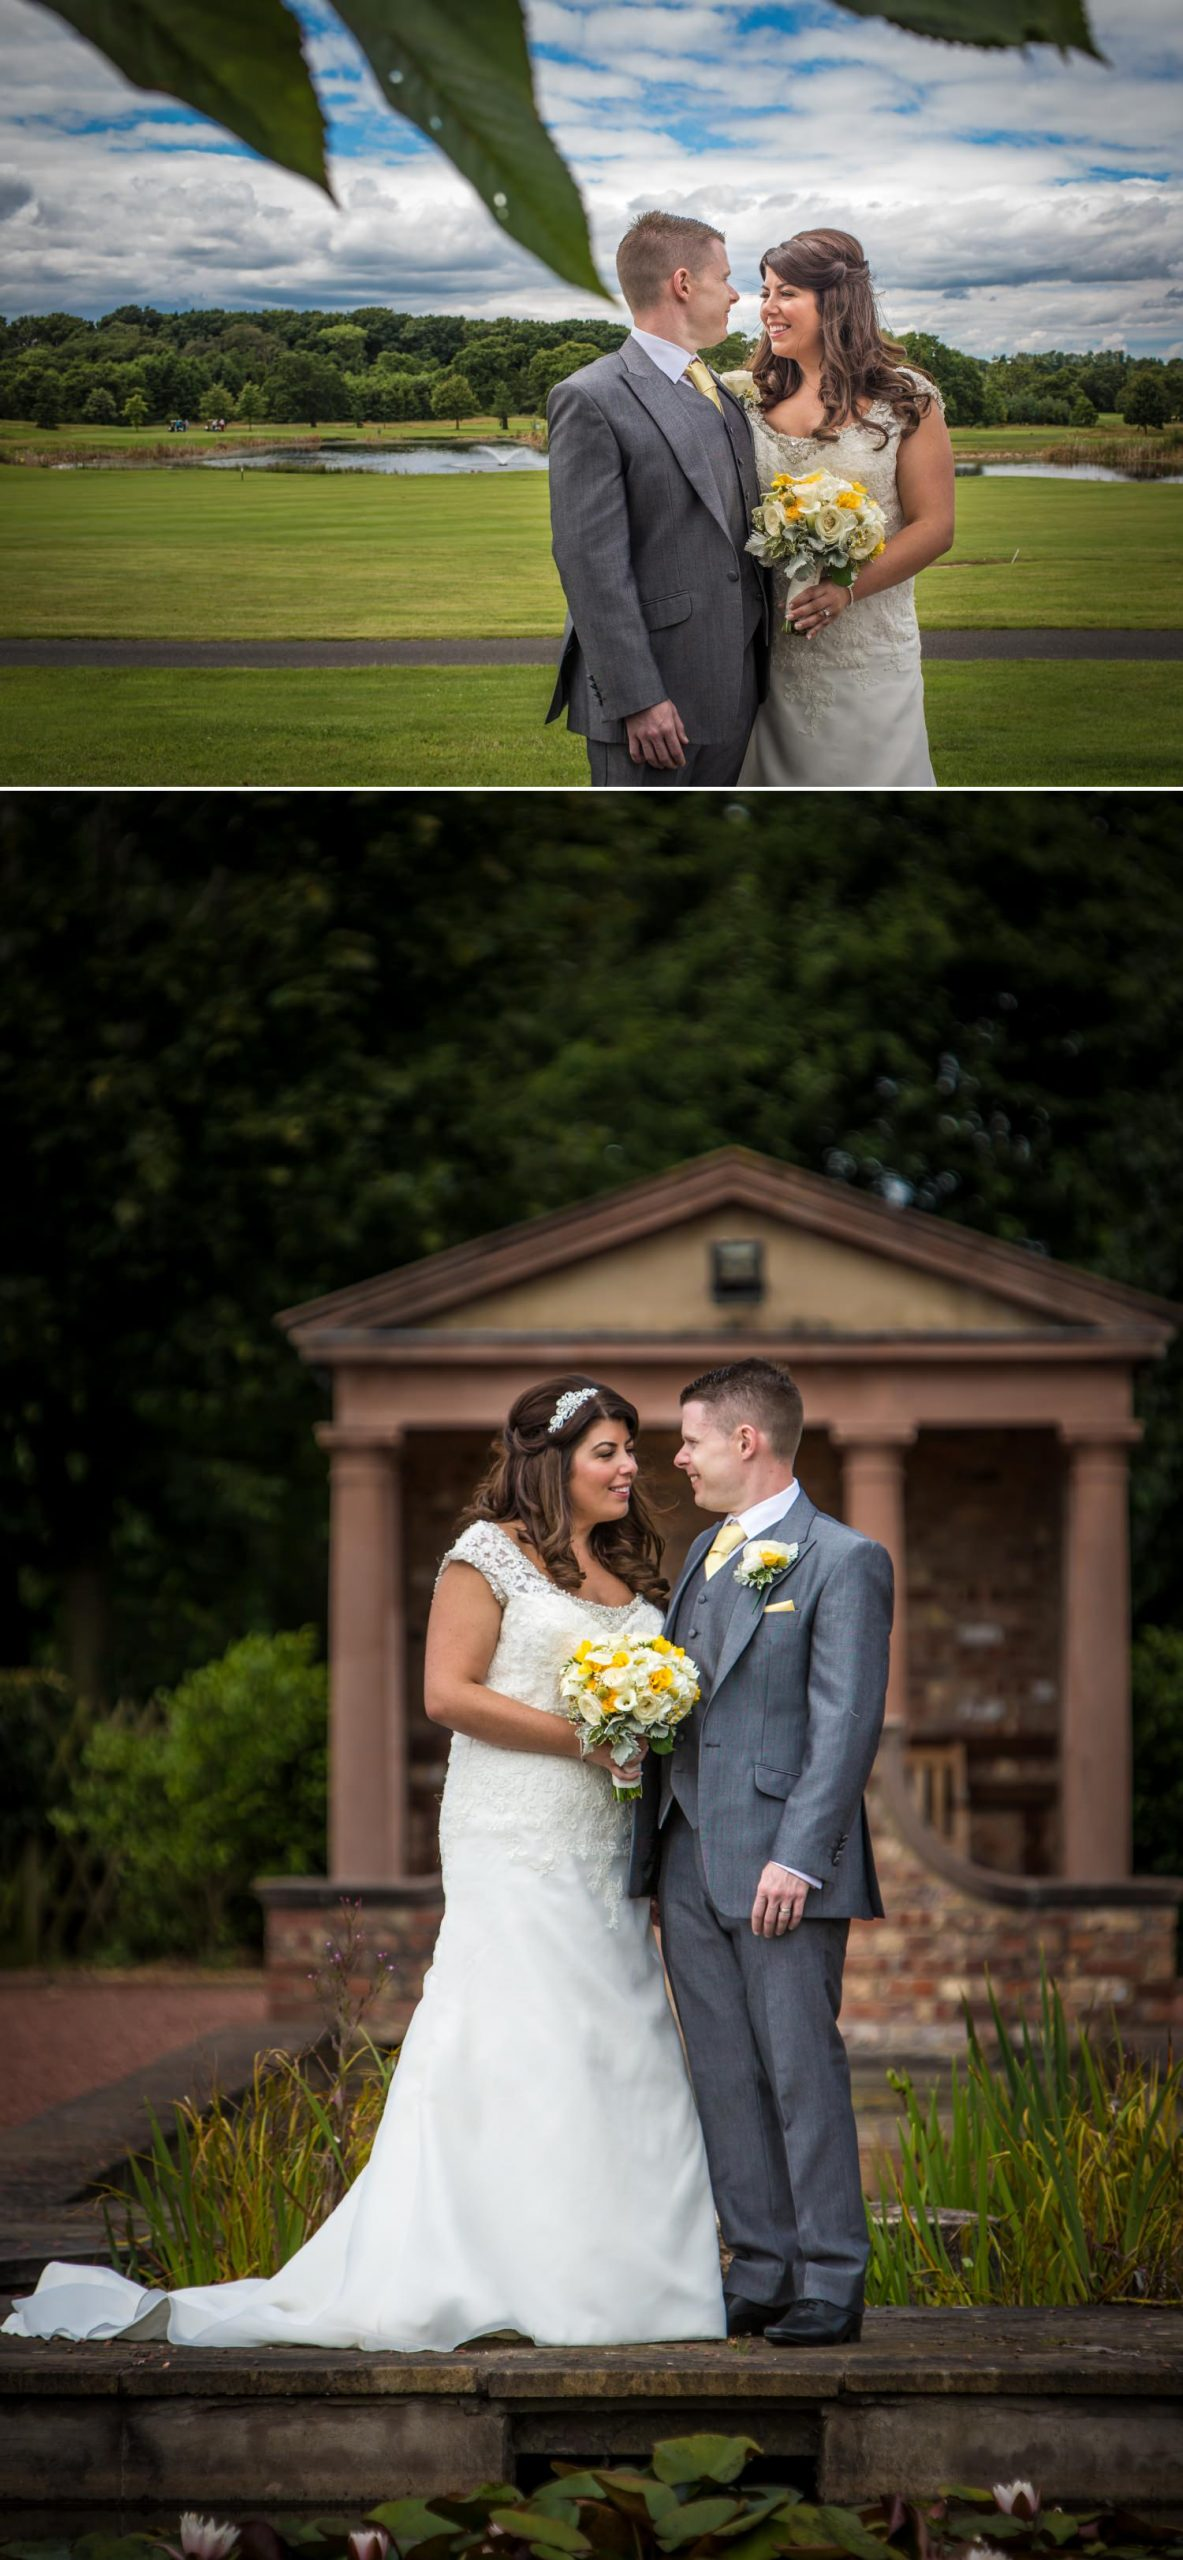 Wedding Photography portraits at Carden Park